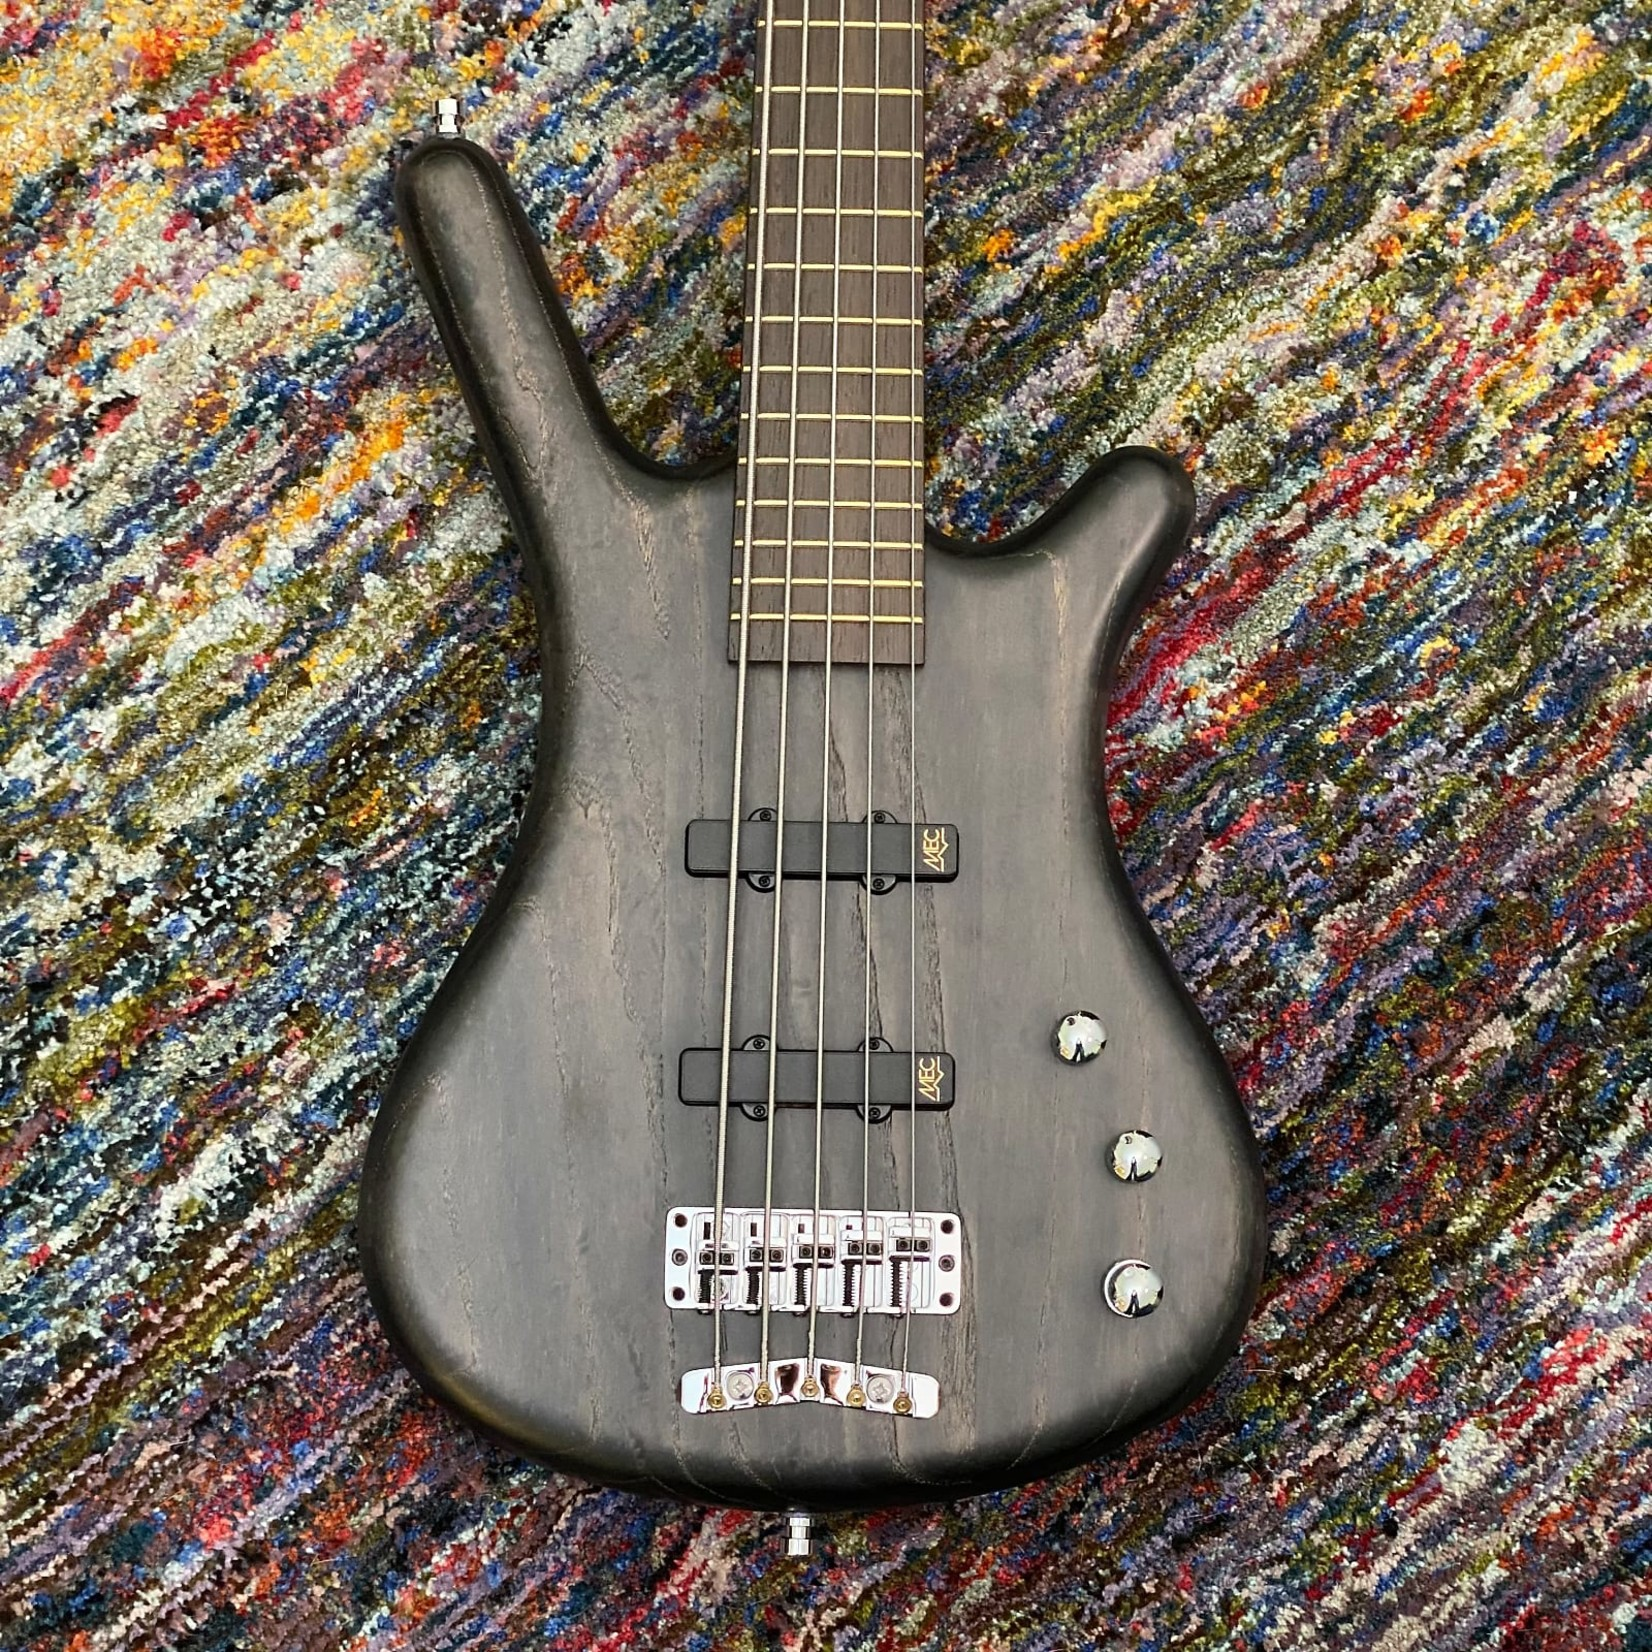 Warwick Warwick Pro Series Corvette Ash-5 String Bass, Active, Nirvana Black Transp. Satin, Germany (2020, Blem)